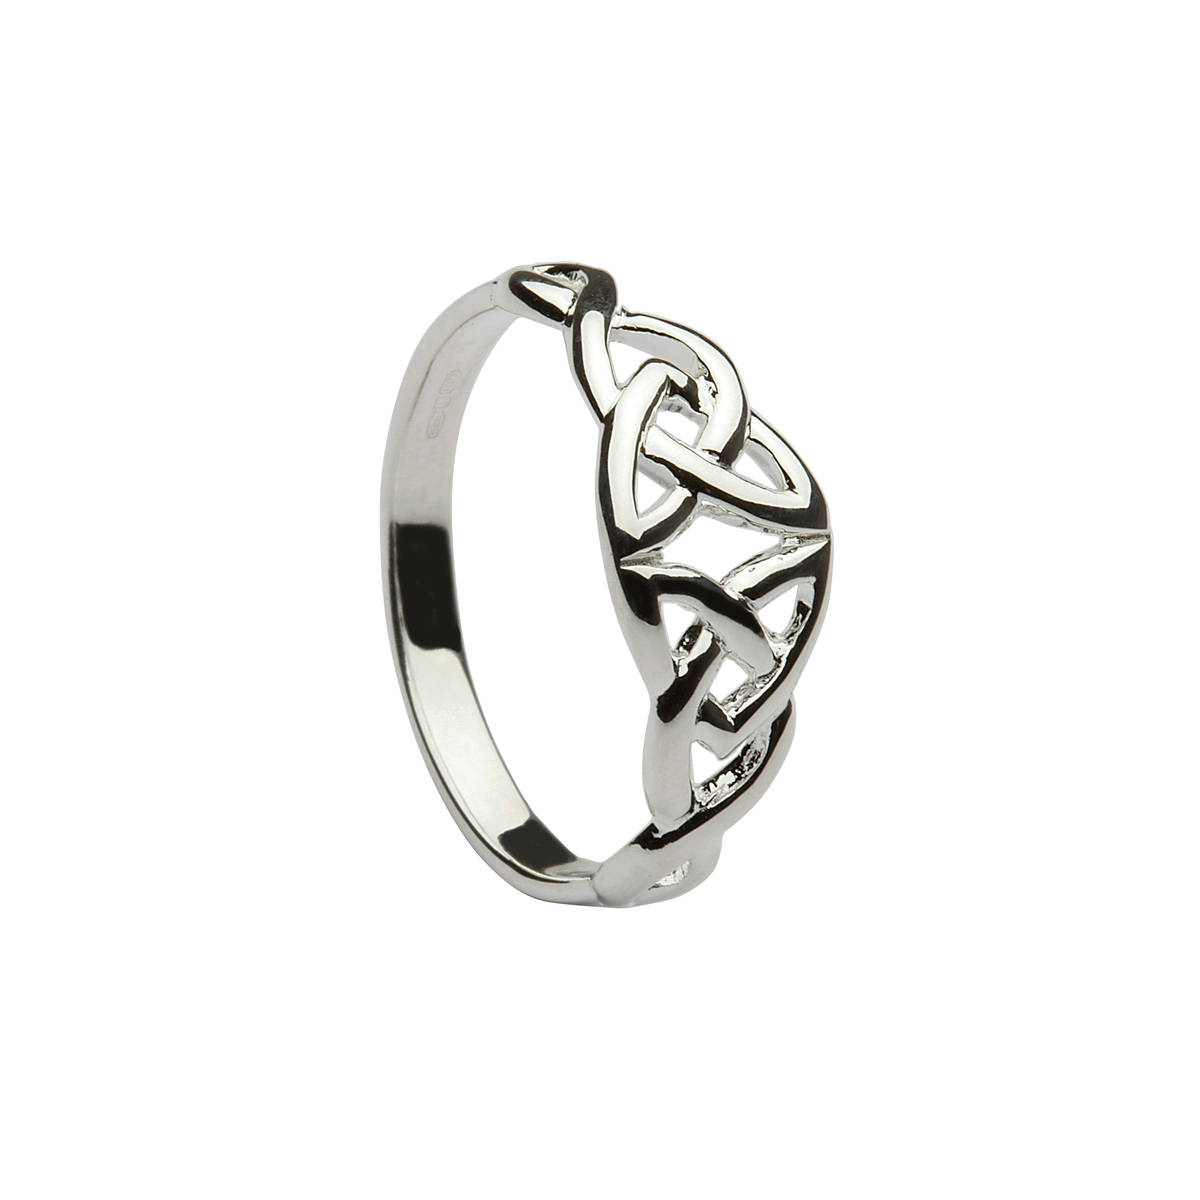 Silver classic mirrored celtic knot ring